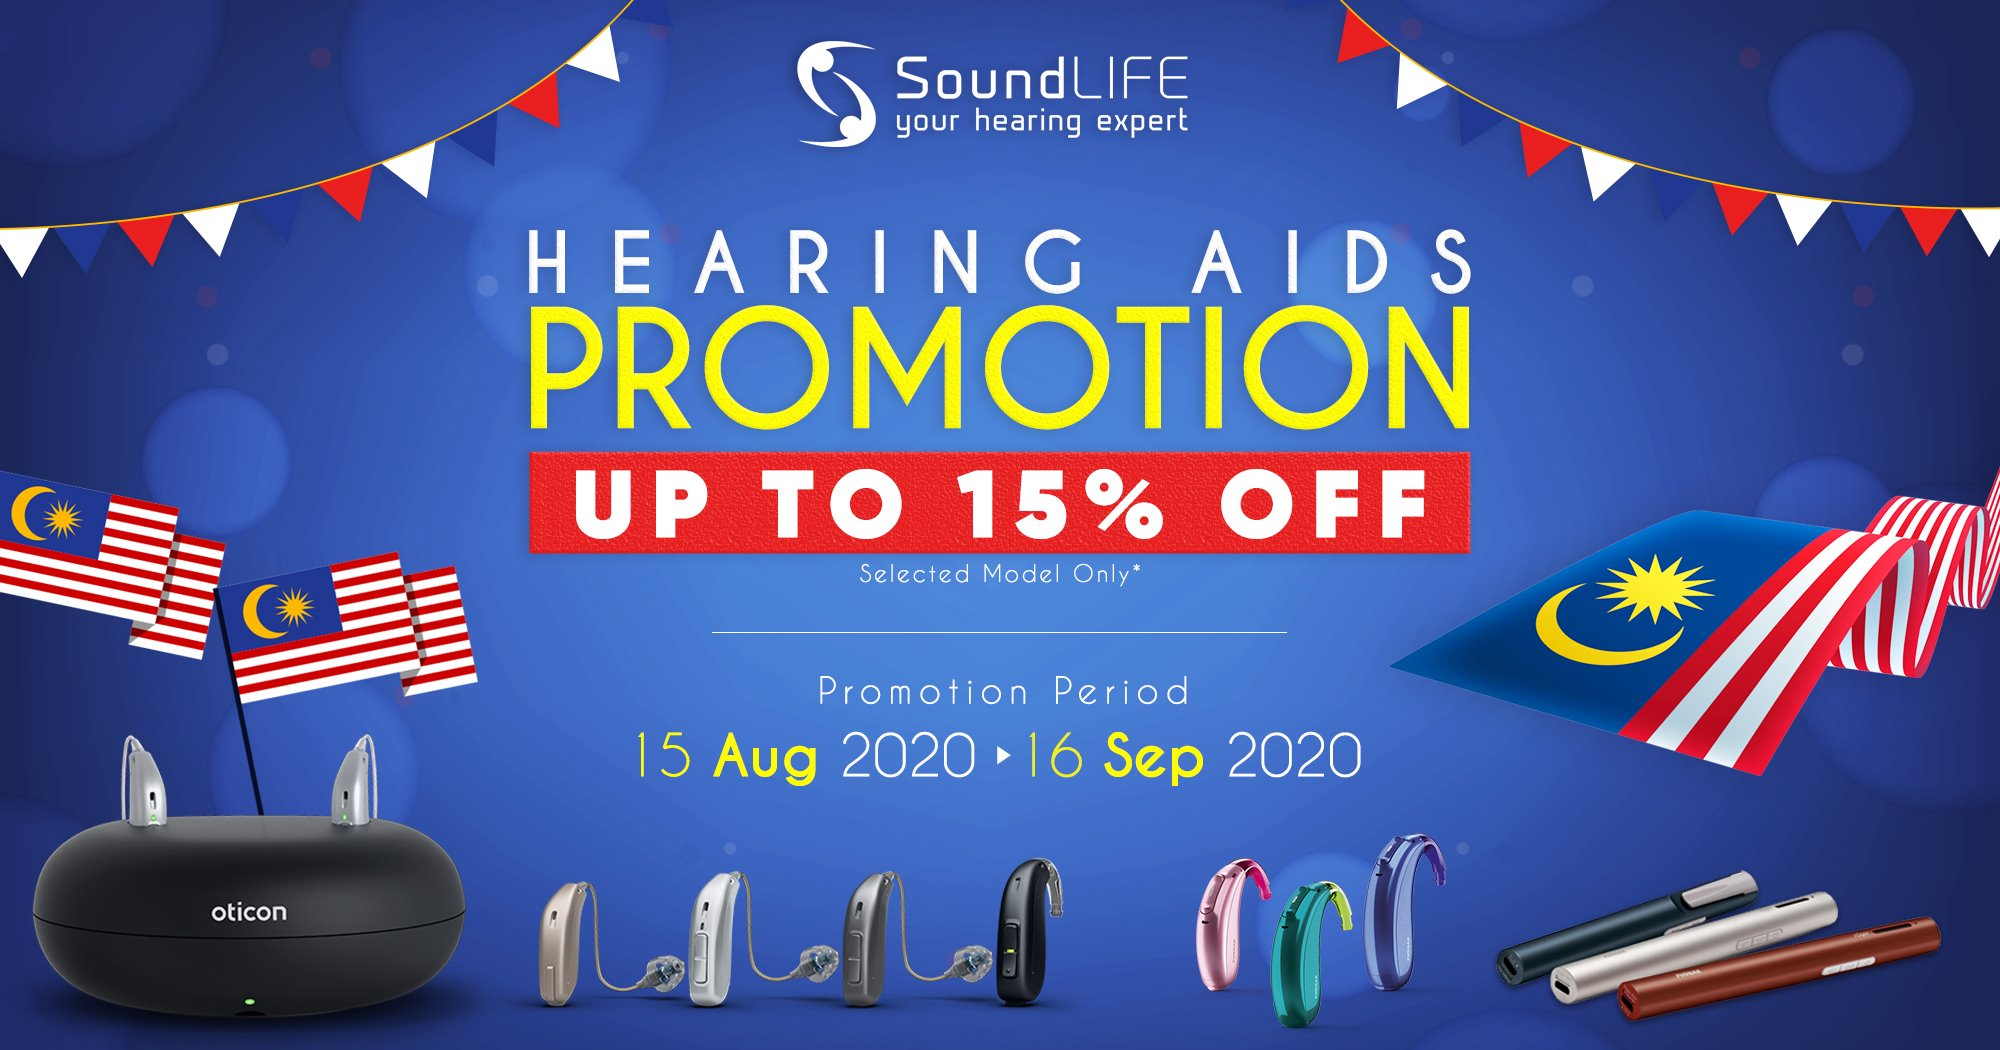 Soundlife Hearing Aids Promo